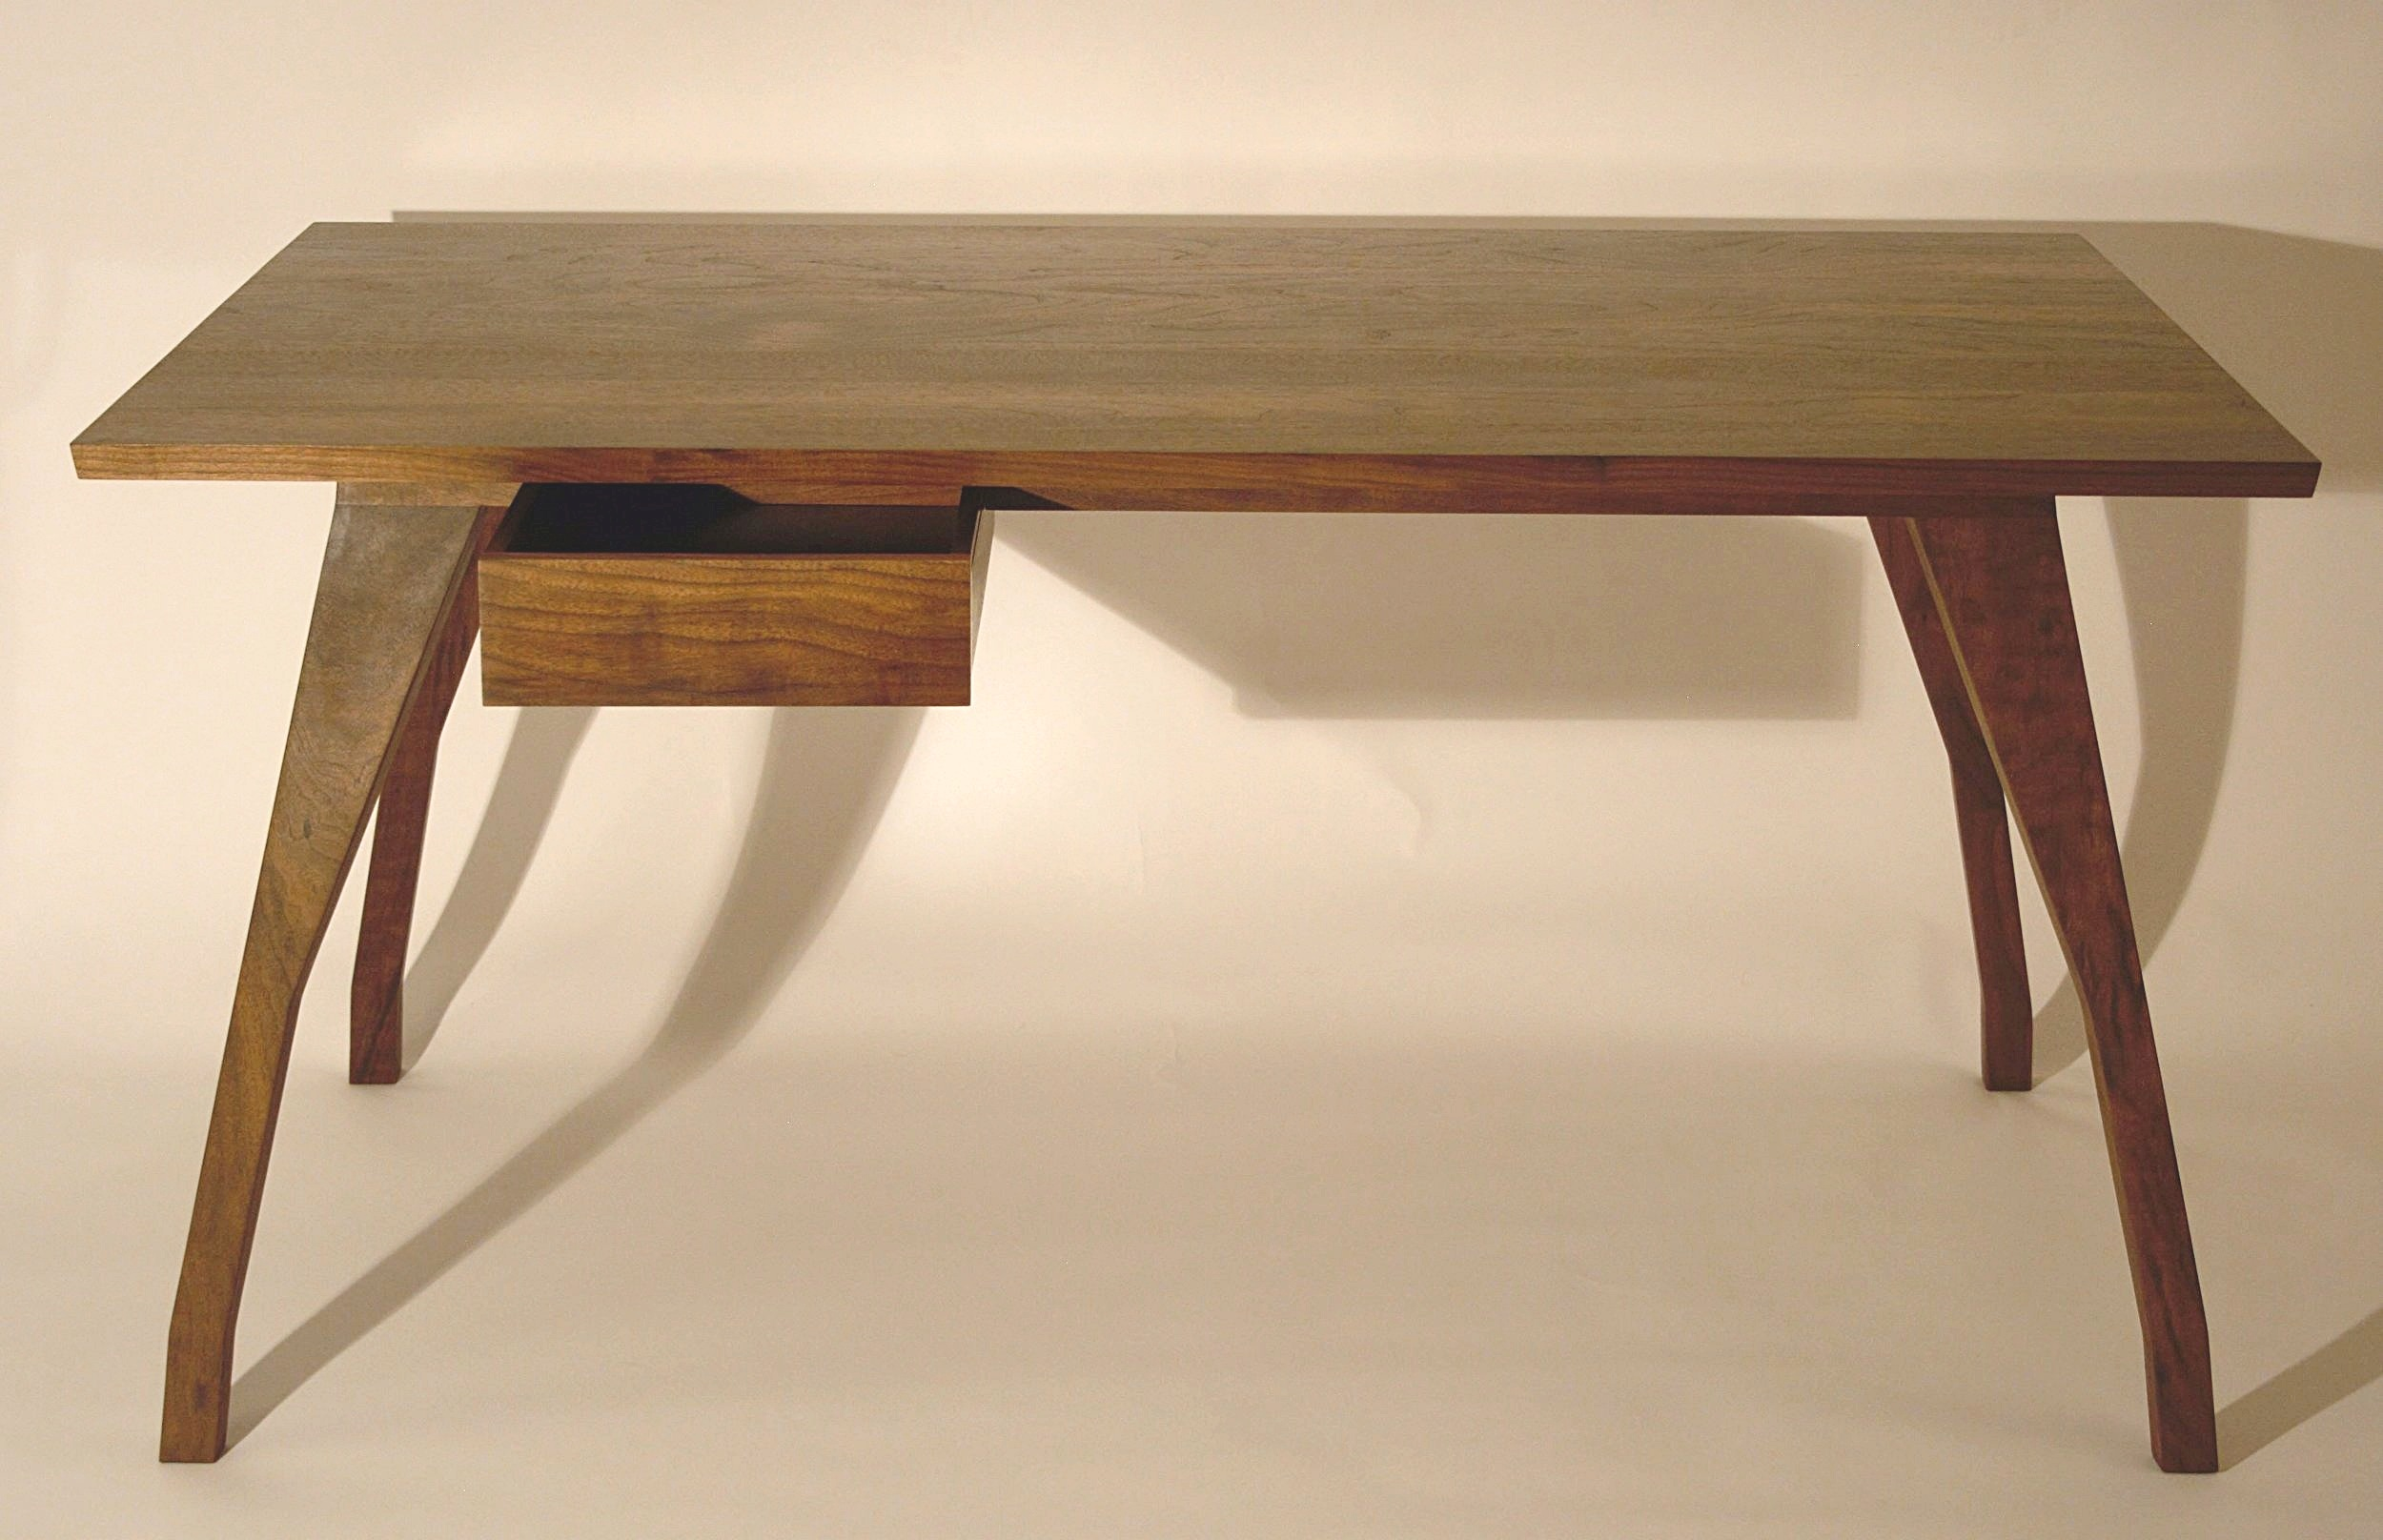 Heliconia_Furniture_Foal_Desk_finished4.jpg